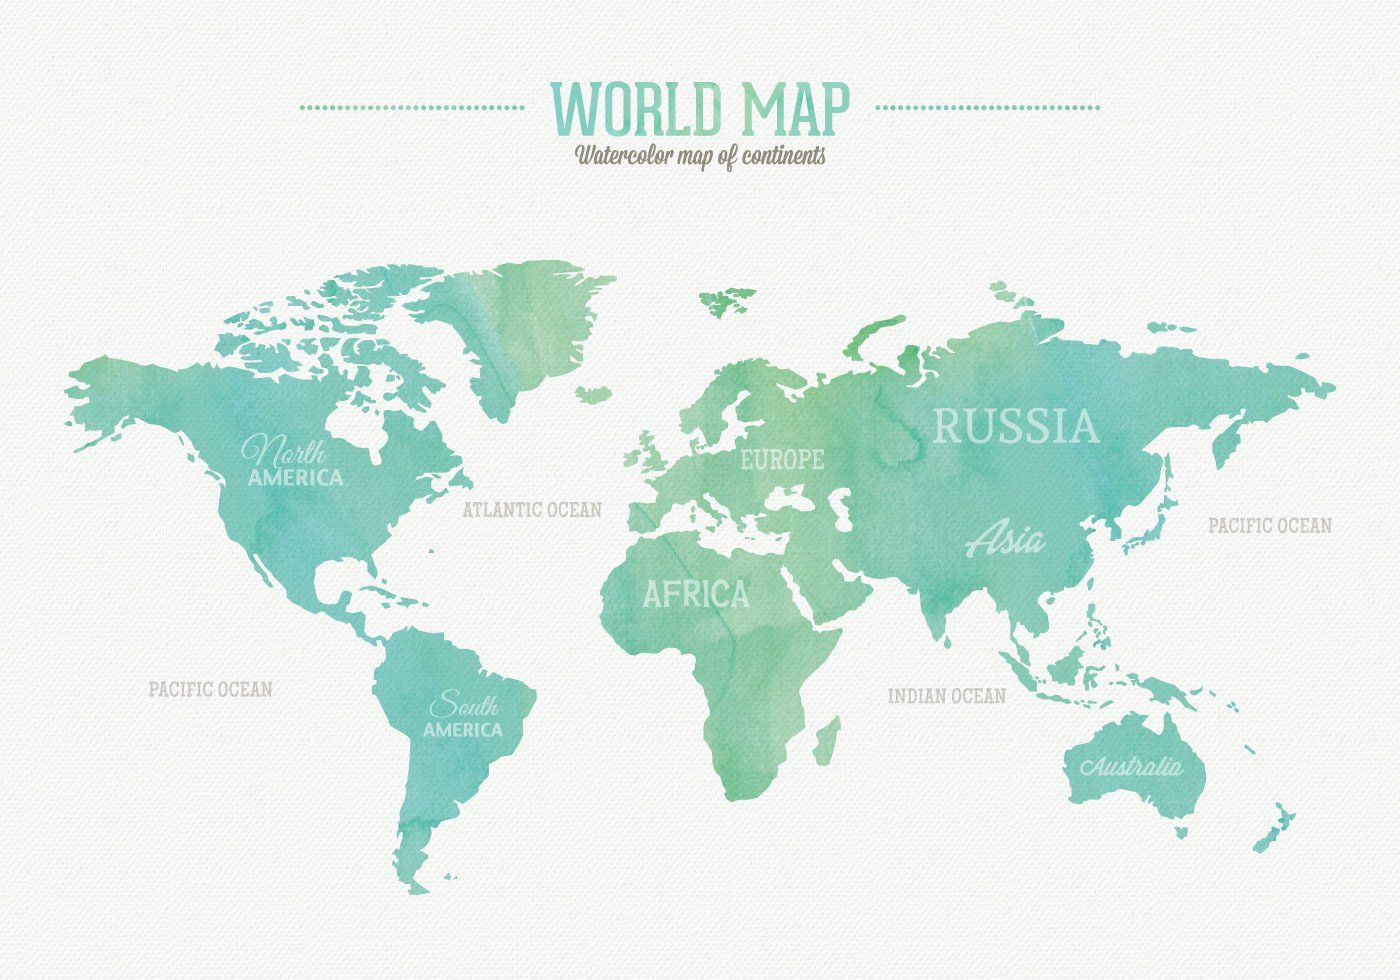 Watercolor world map vector graphic international watercolour watercolor world map vector graphic international watercolour cartography continents topography silhouette worldwide geography australia gumiabroncs